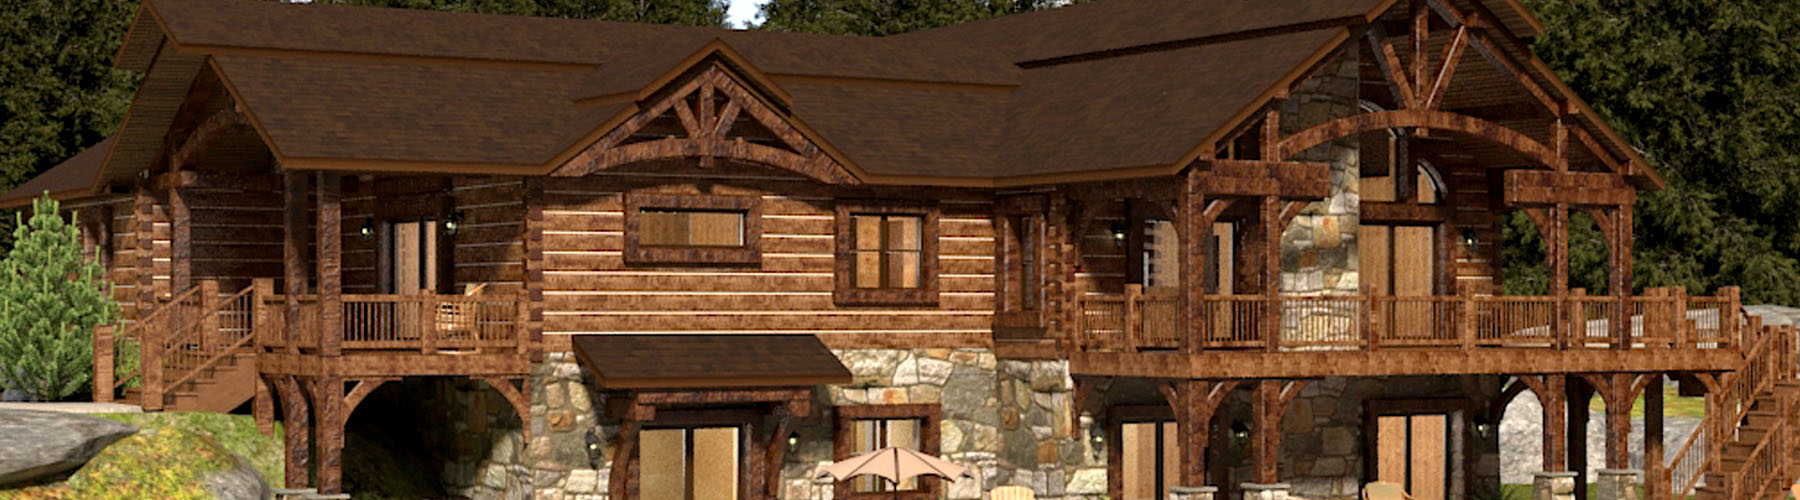 Golden Eagle Log and Timber Homes : Plans & Pricing : Plan ... on dream country home plans, dream cottage plans, dream luxury house floor plans, retreat house plans, single floor house plans, dream house blueprints, dream modern house plans, 2014 new home plans, dream house with pool, dream barn plans, morton house plans, ranch farmhouse plans, dream lake house plans, dream home floor plans, modern rustic house plans, dream log home plans, california ranch floor plans, dream home house plans, dream small house plans, dream country house plans,